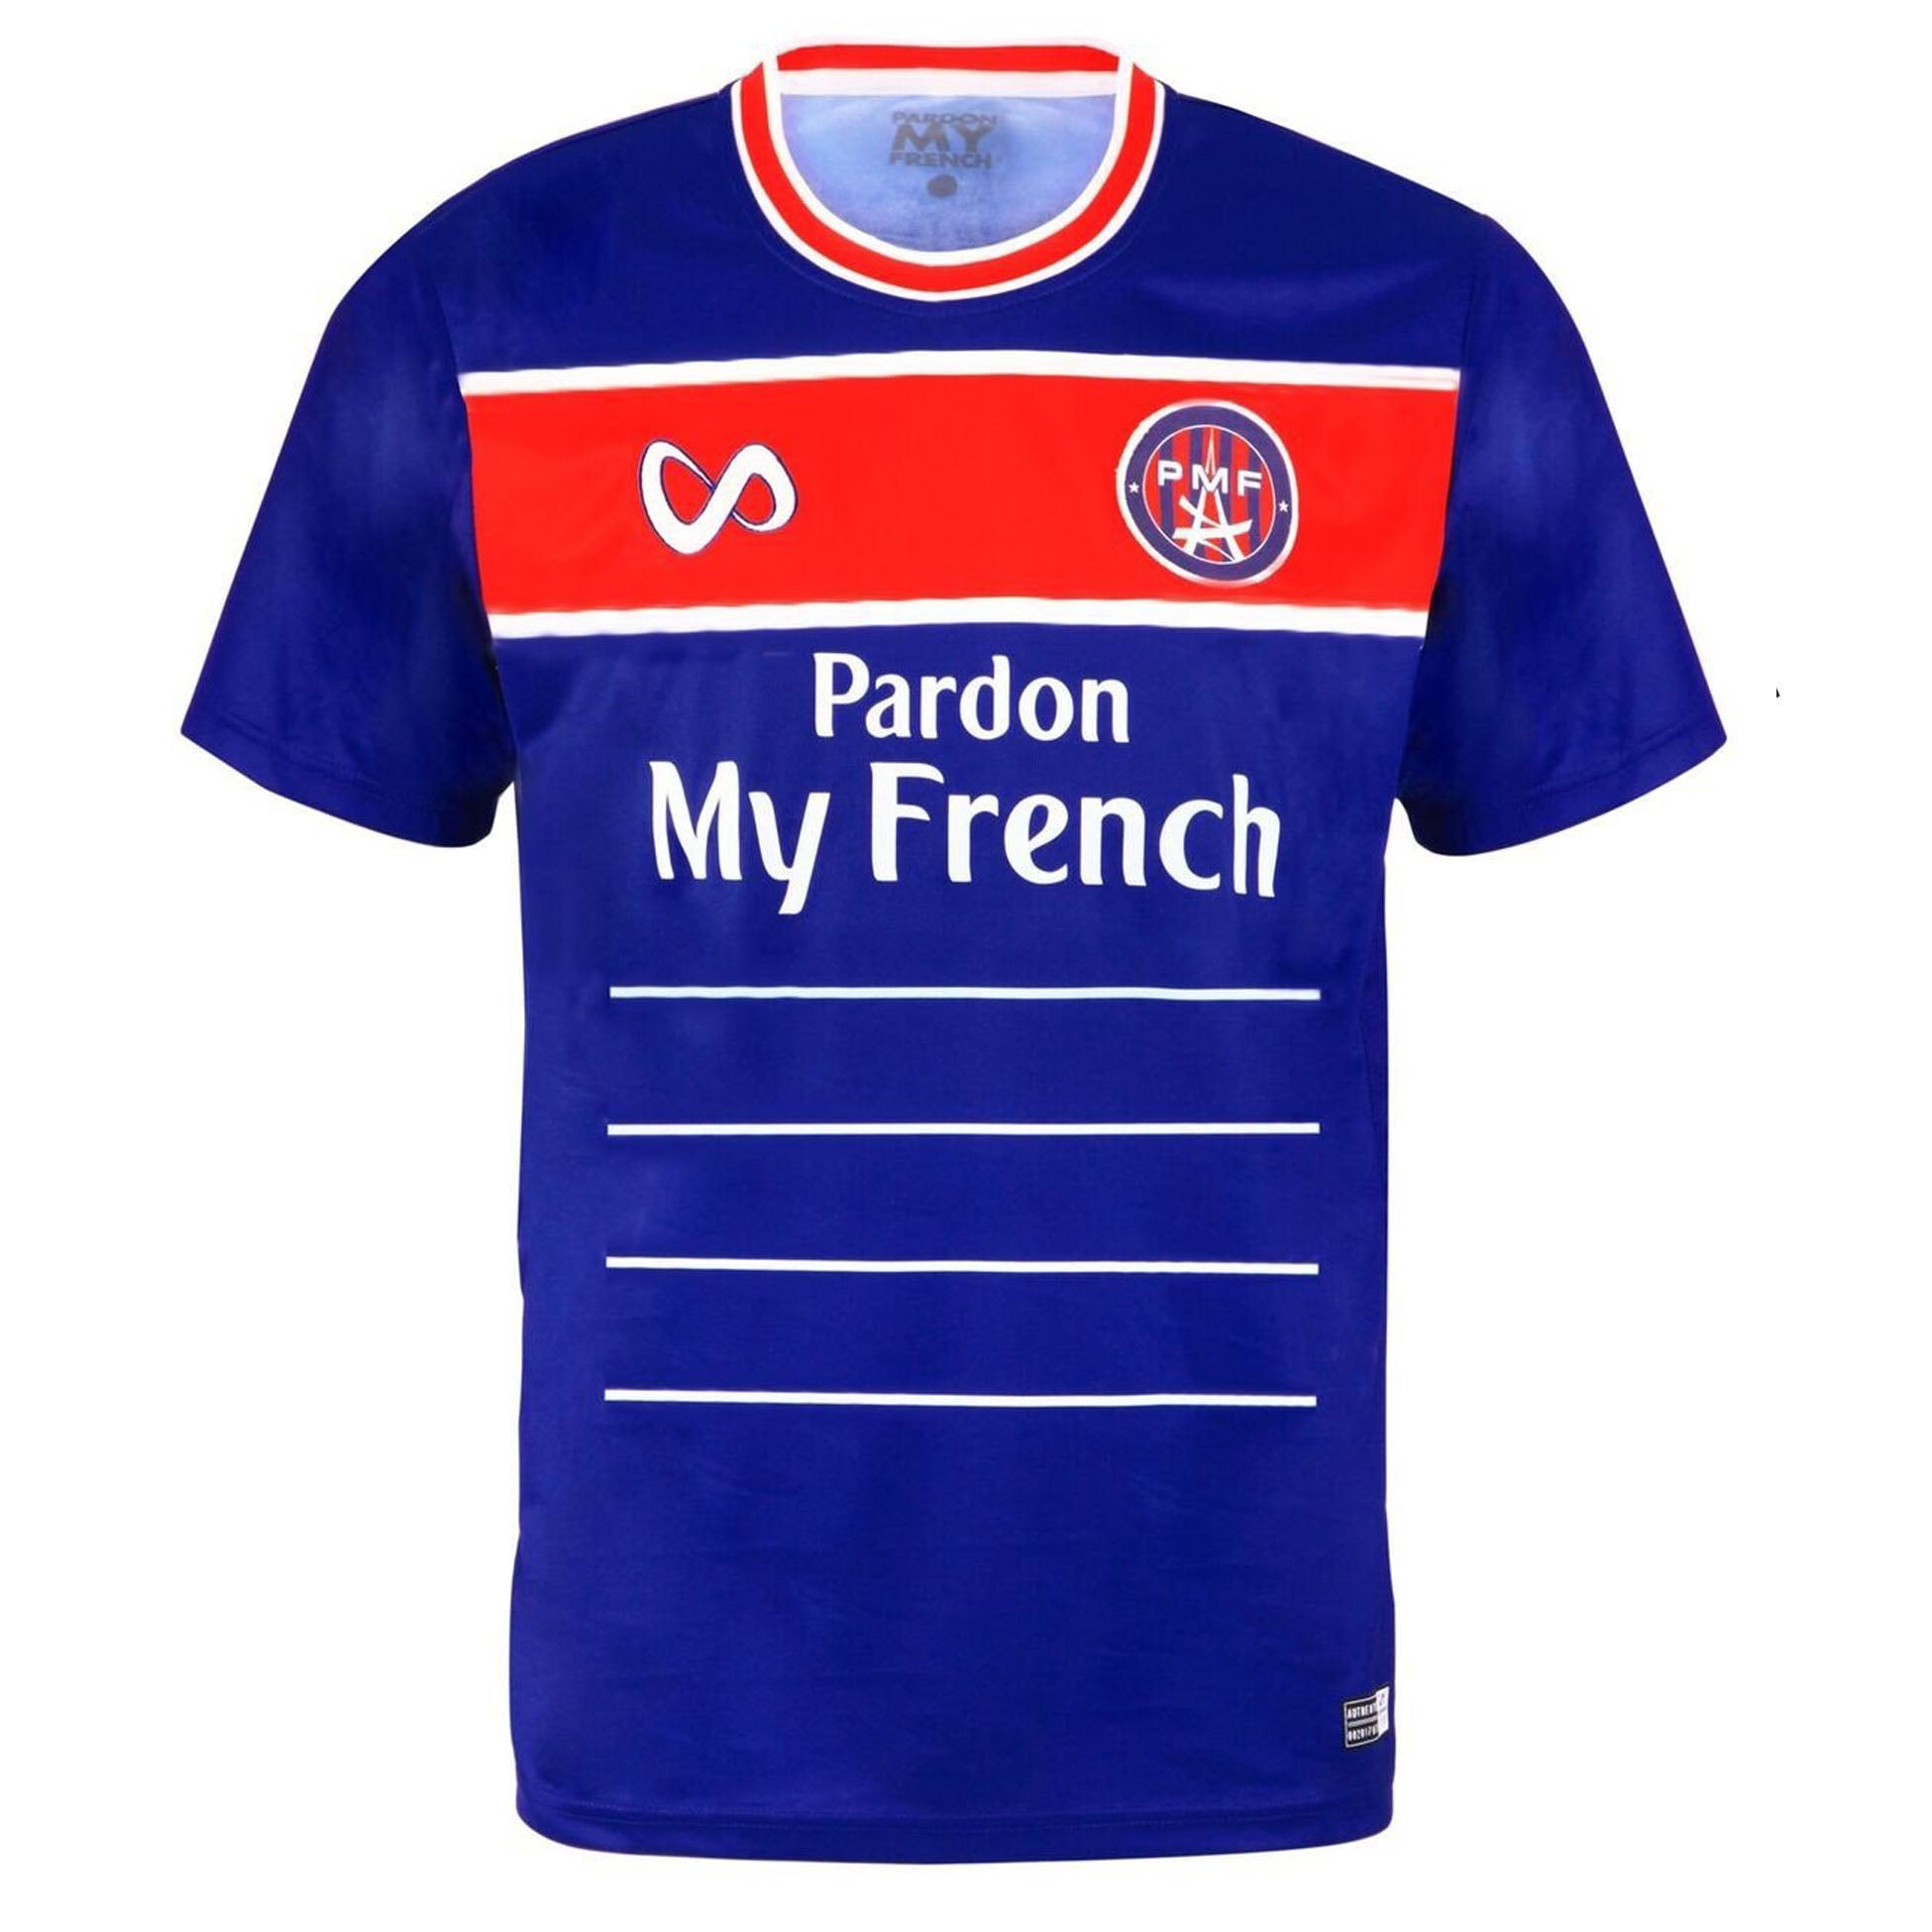 PARDON MY FRENCH JERSEY 2018